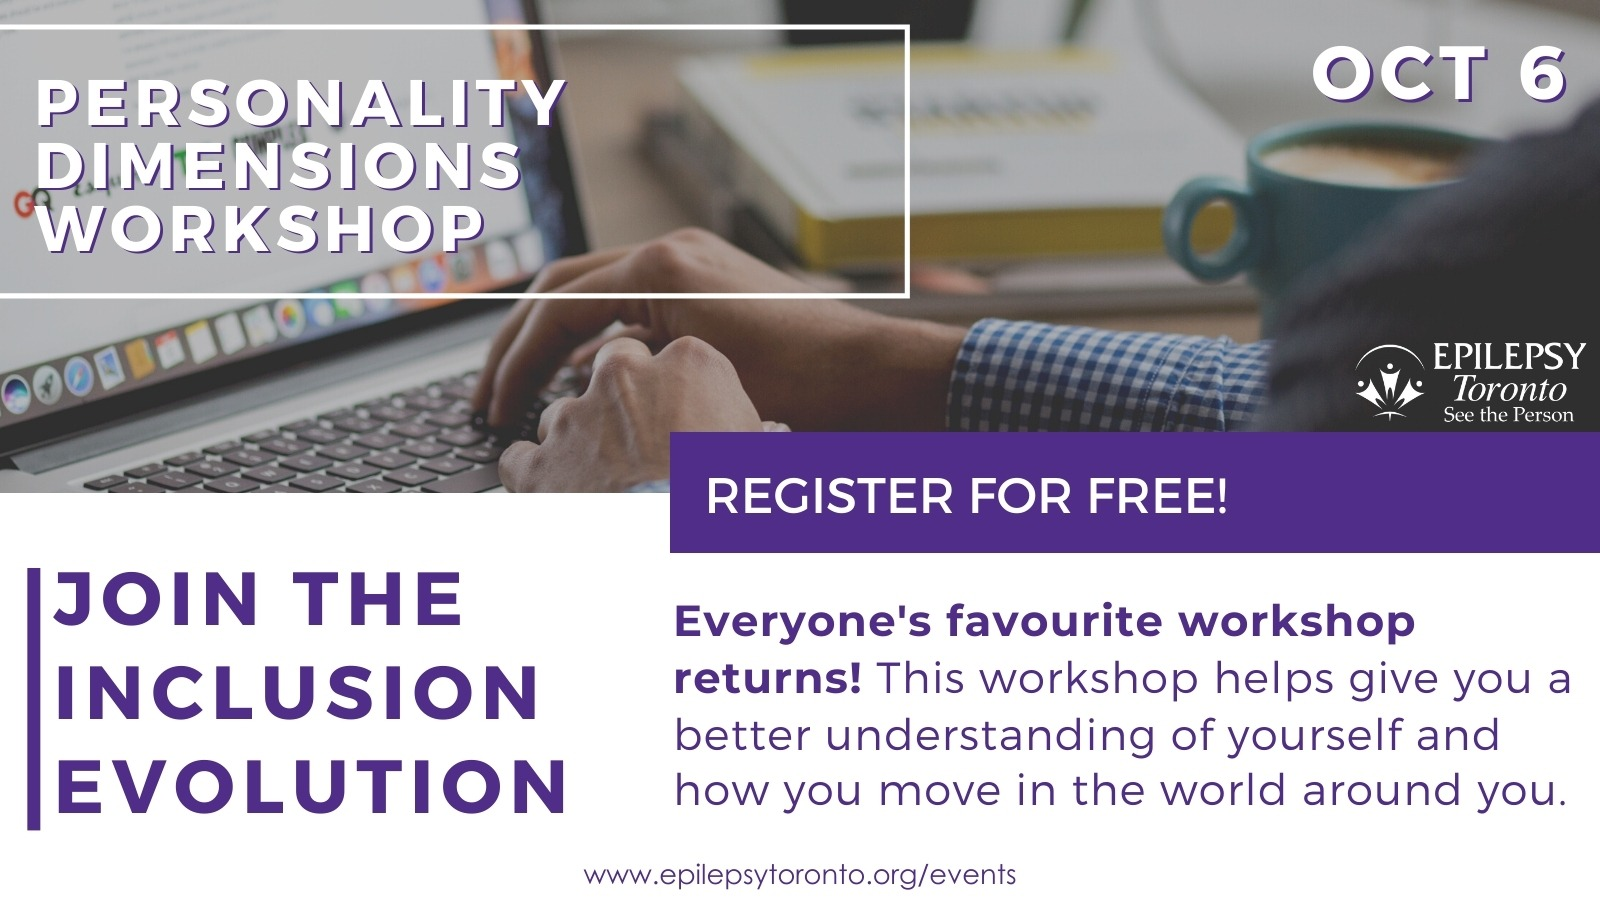 Someone typing on laptop with 'Personality Dimensions Workshop' title